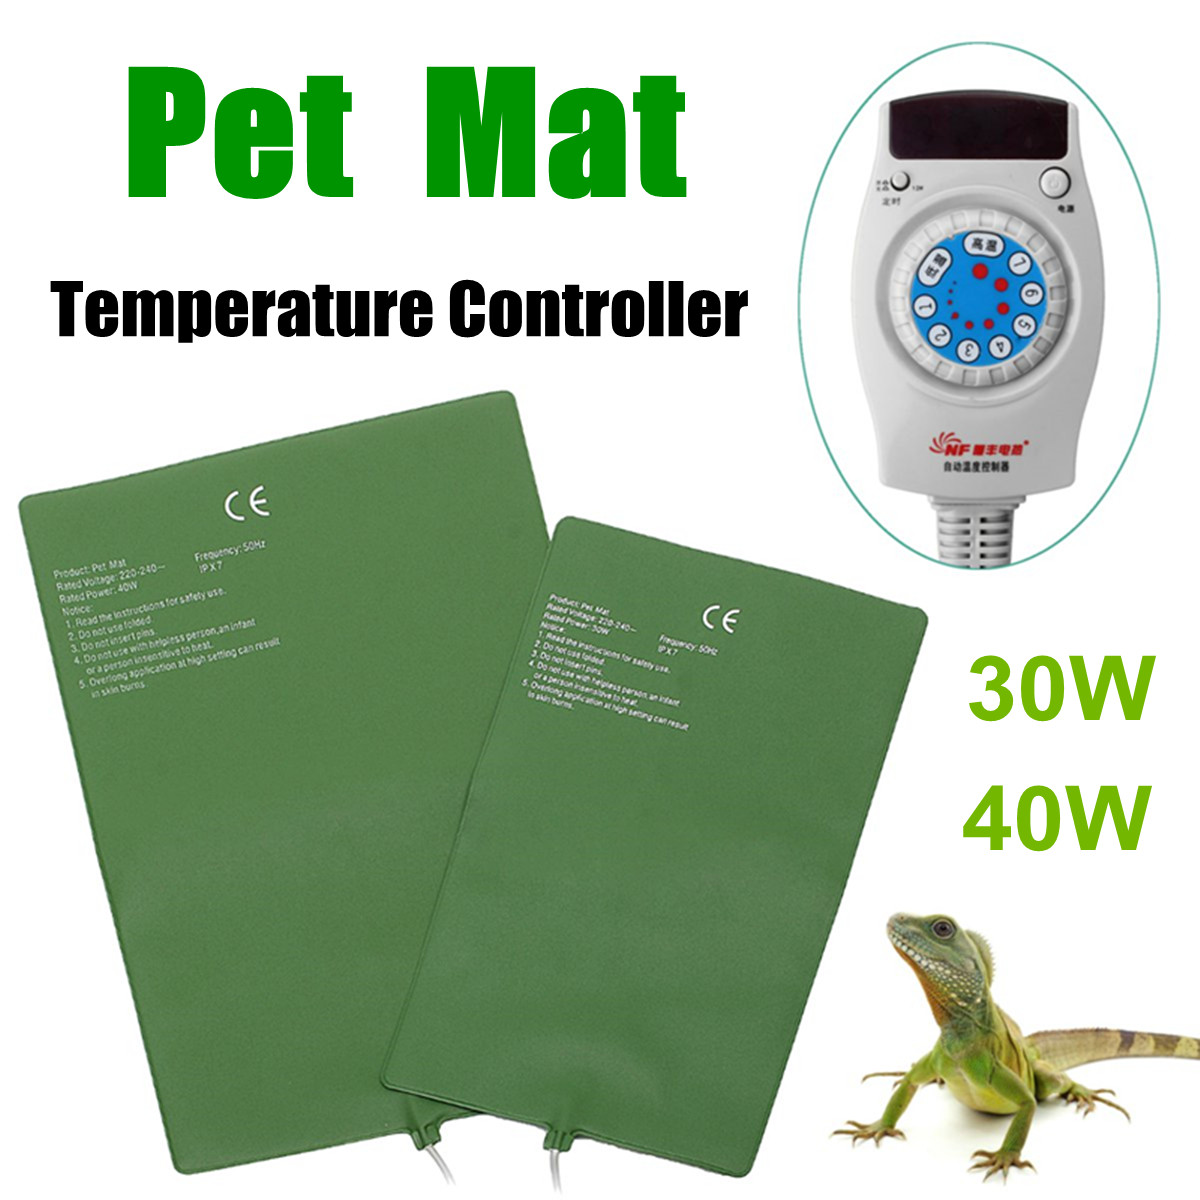 Aquarium Reptiles Heat Mat 30/40W Pet Turtle Snakes Heating Warm Pad Green Terrarium Automatic Temp Controller Reptiles Supplies